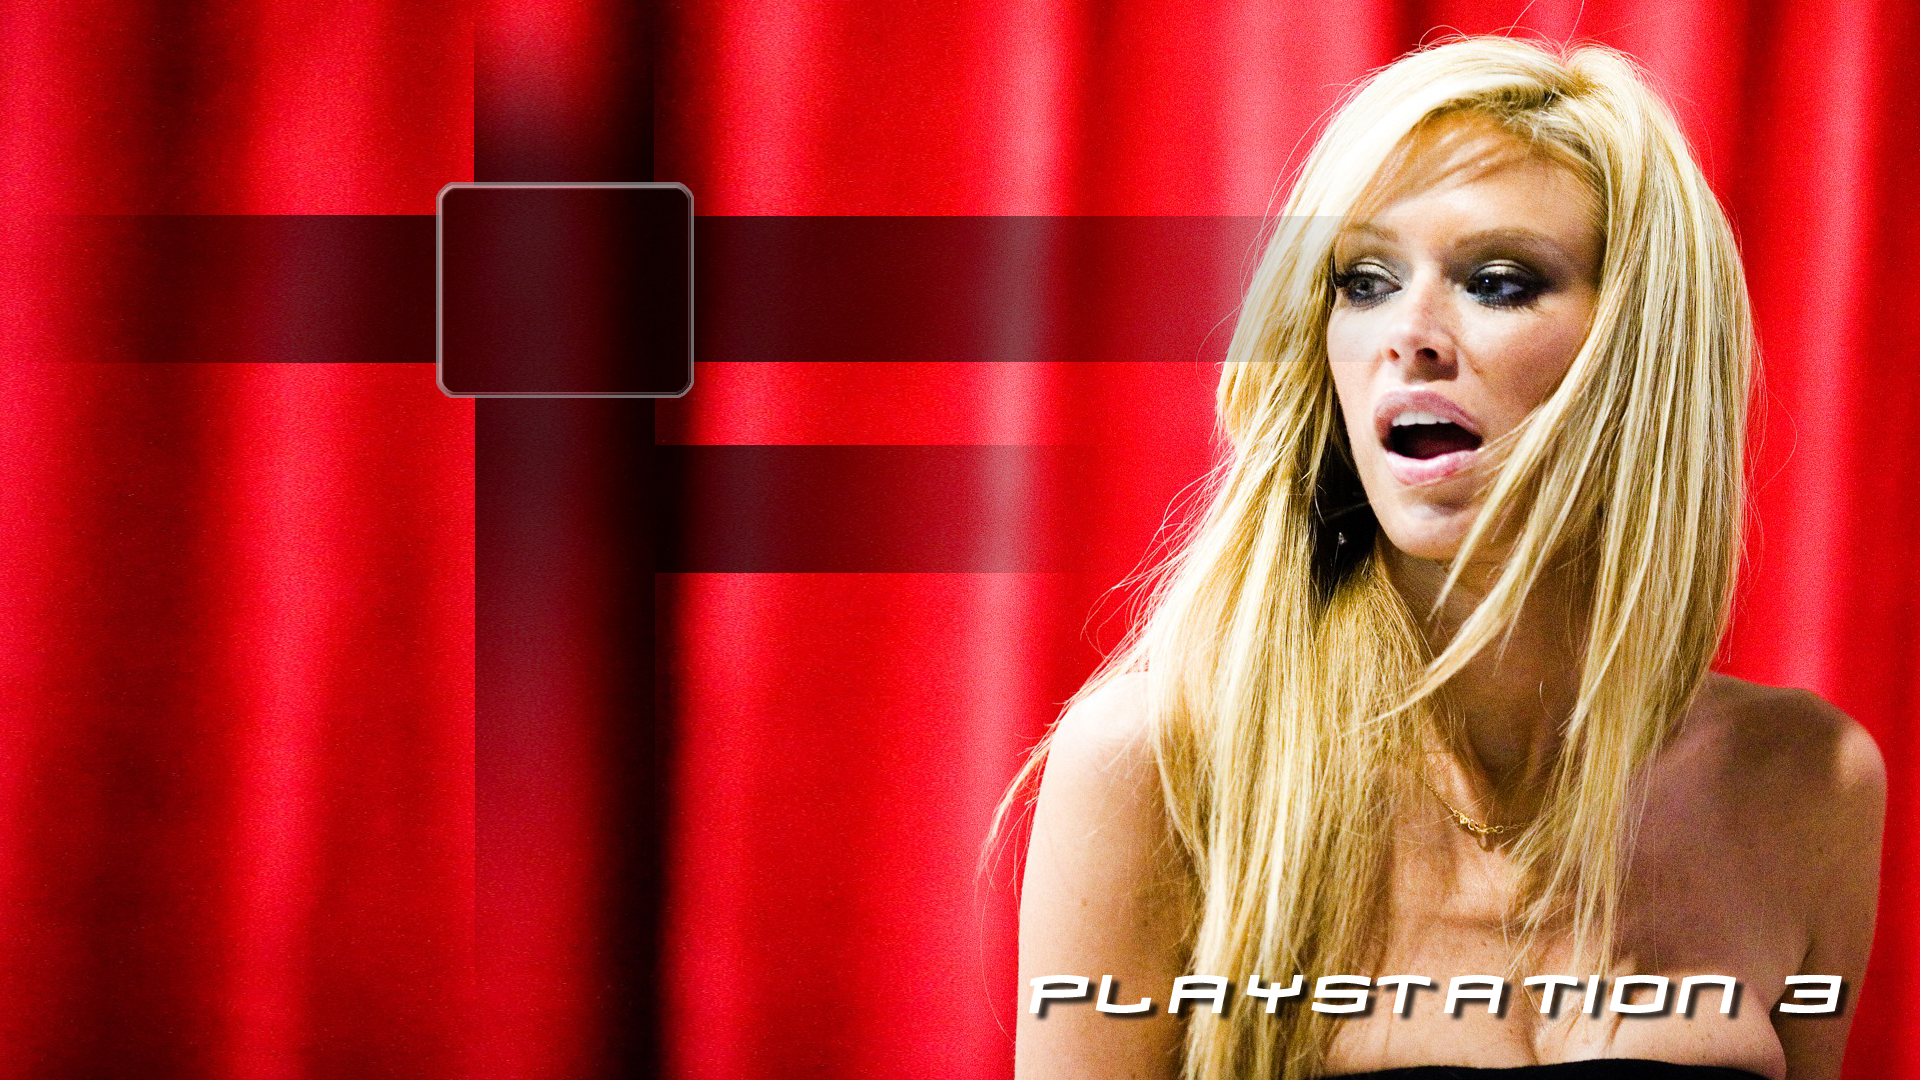 http://images.psxextreme.com/wallpapers/ps3/ps3_jenna_jameson_01.jpg